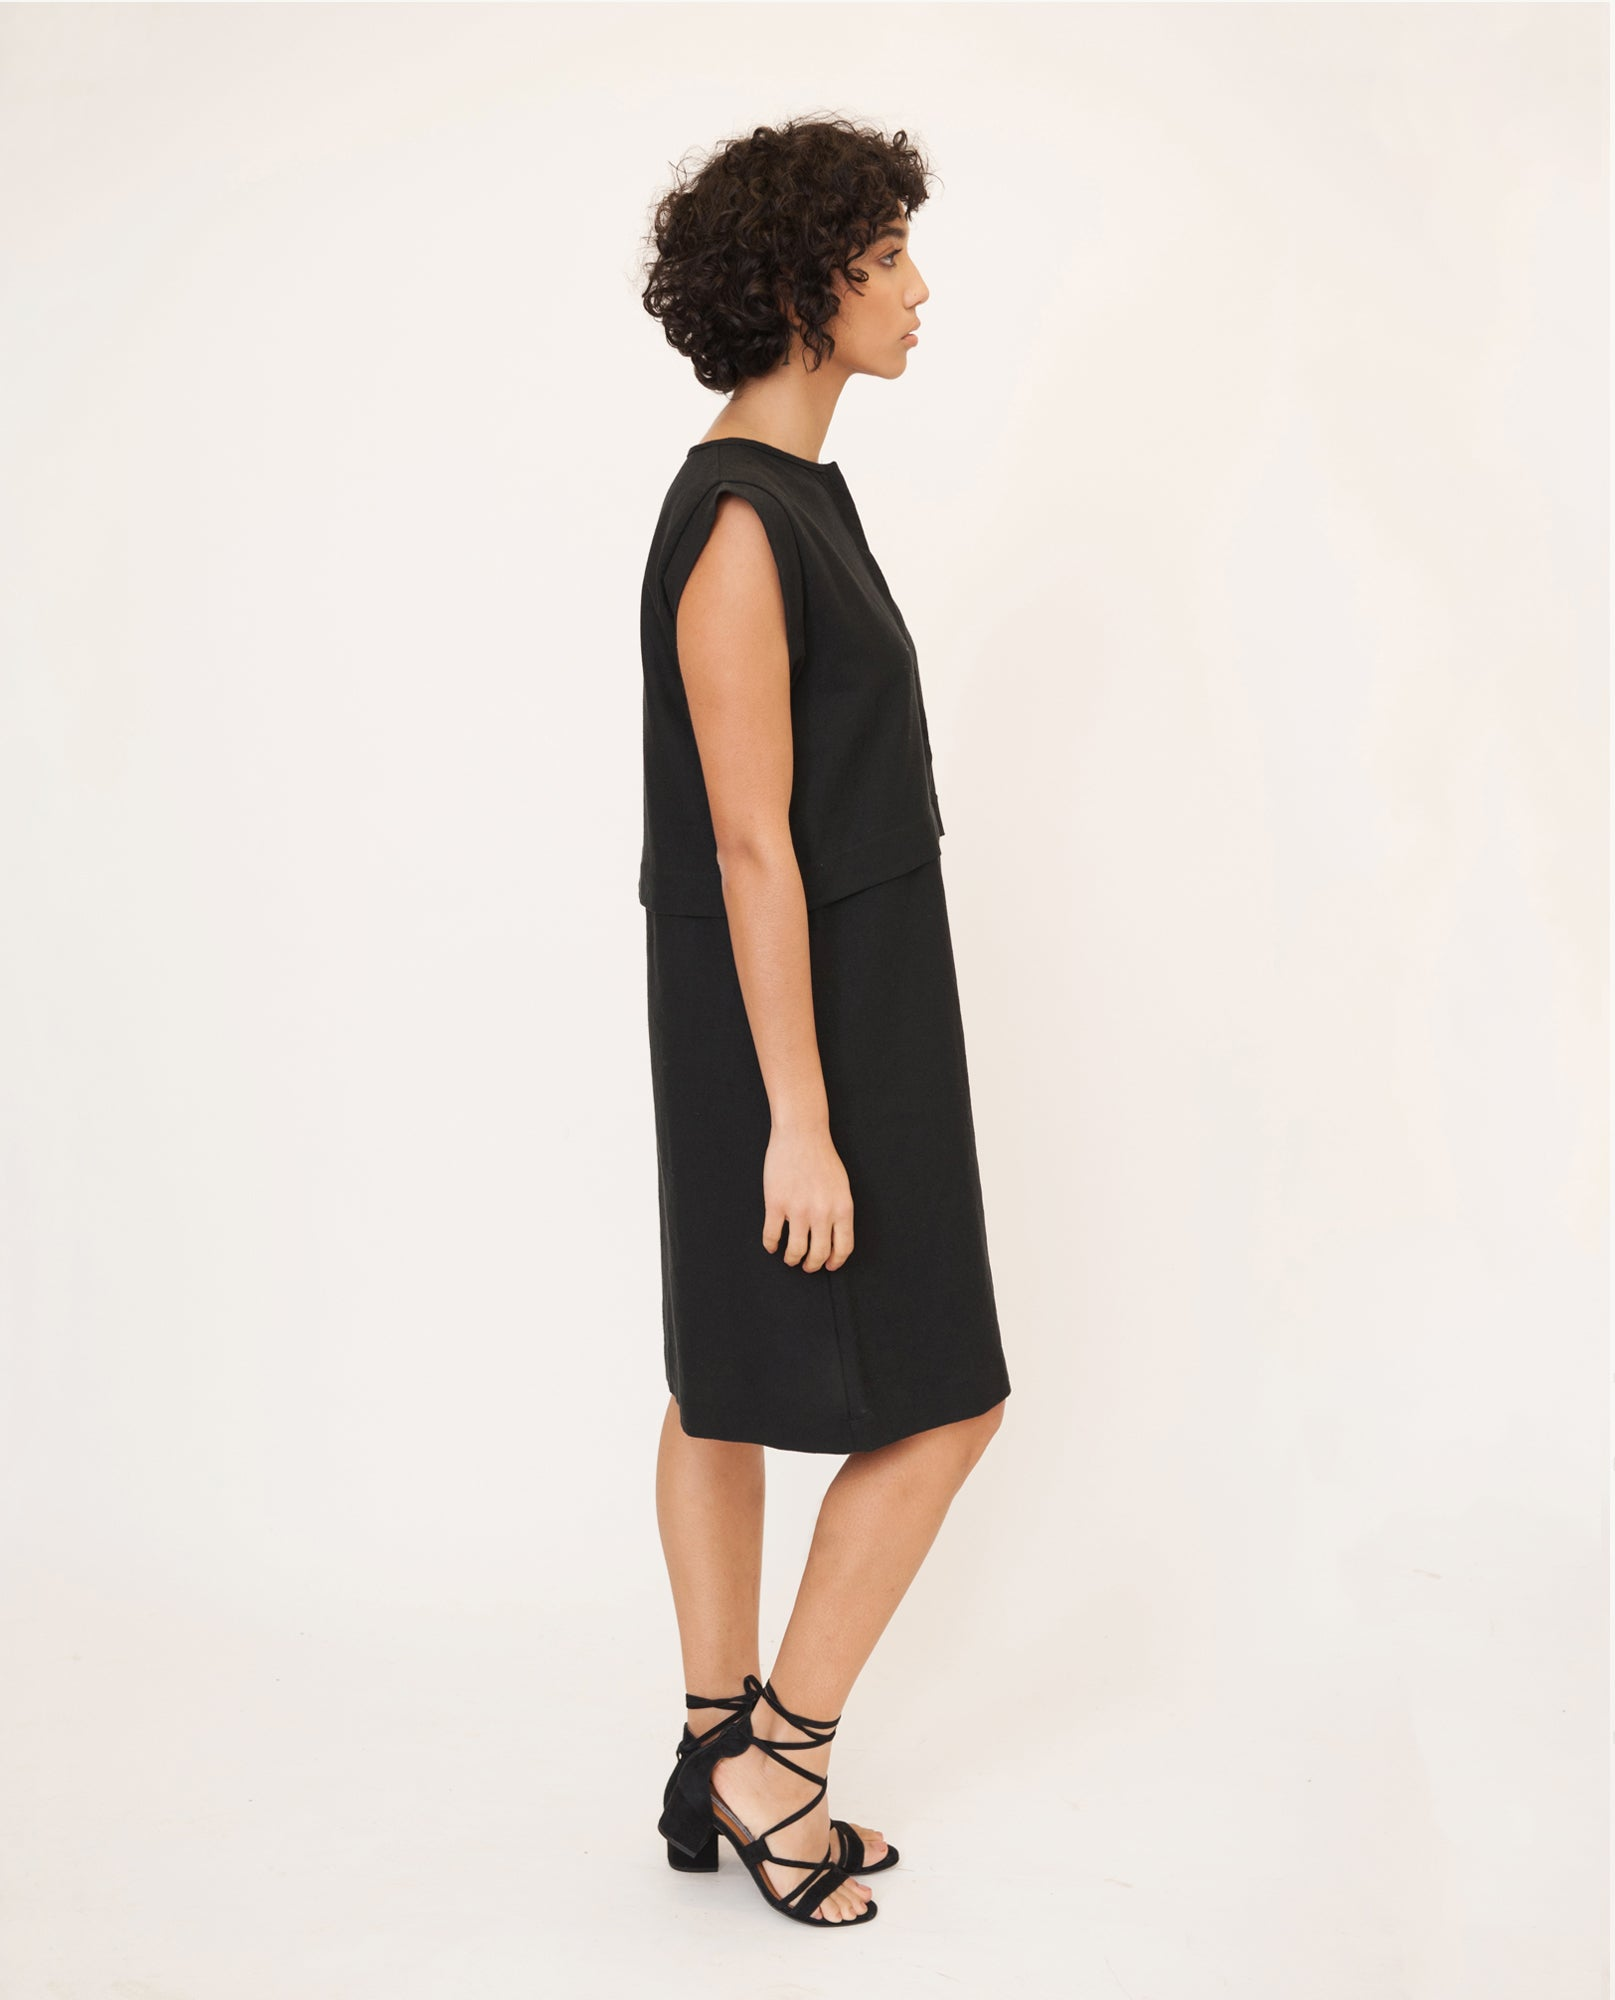 ADELE-MAY Linen And Cotton Dress In Black